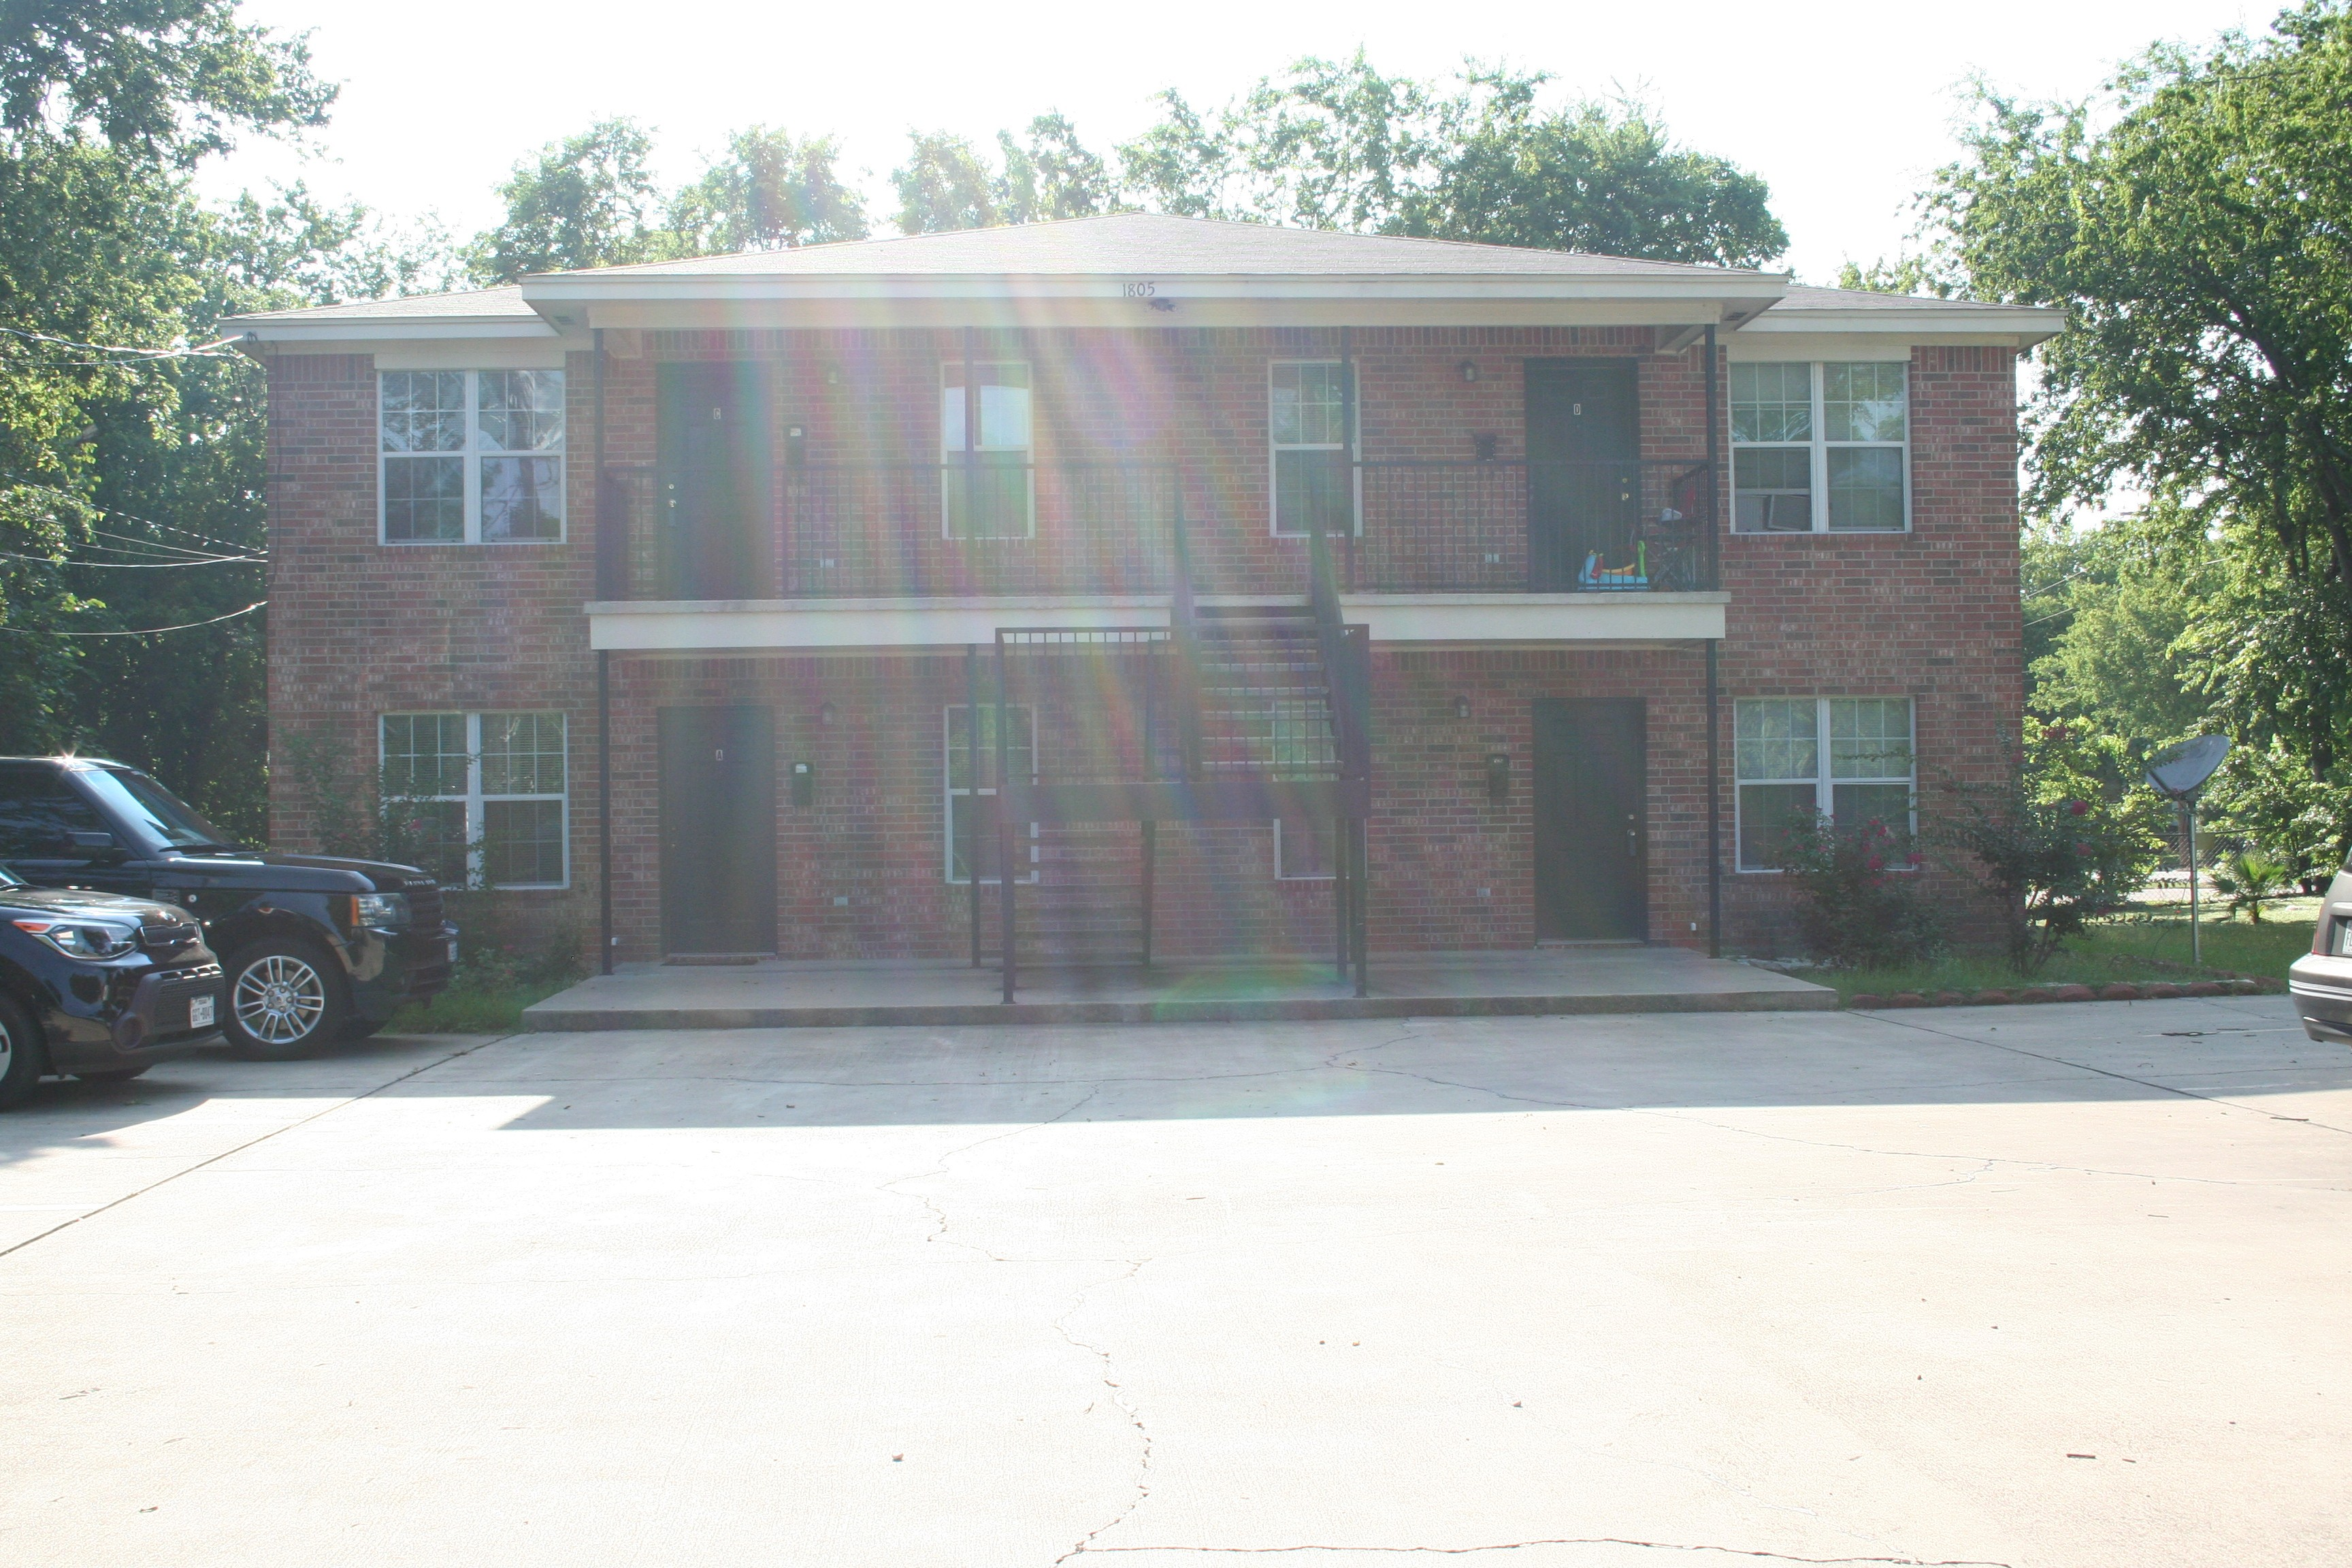 1805 n 10th street apartments for rent 1805 n 10th st